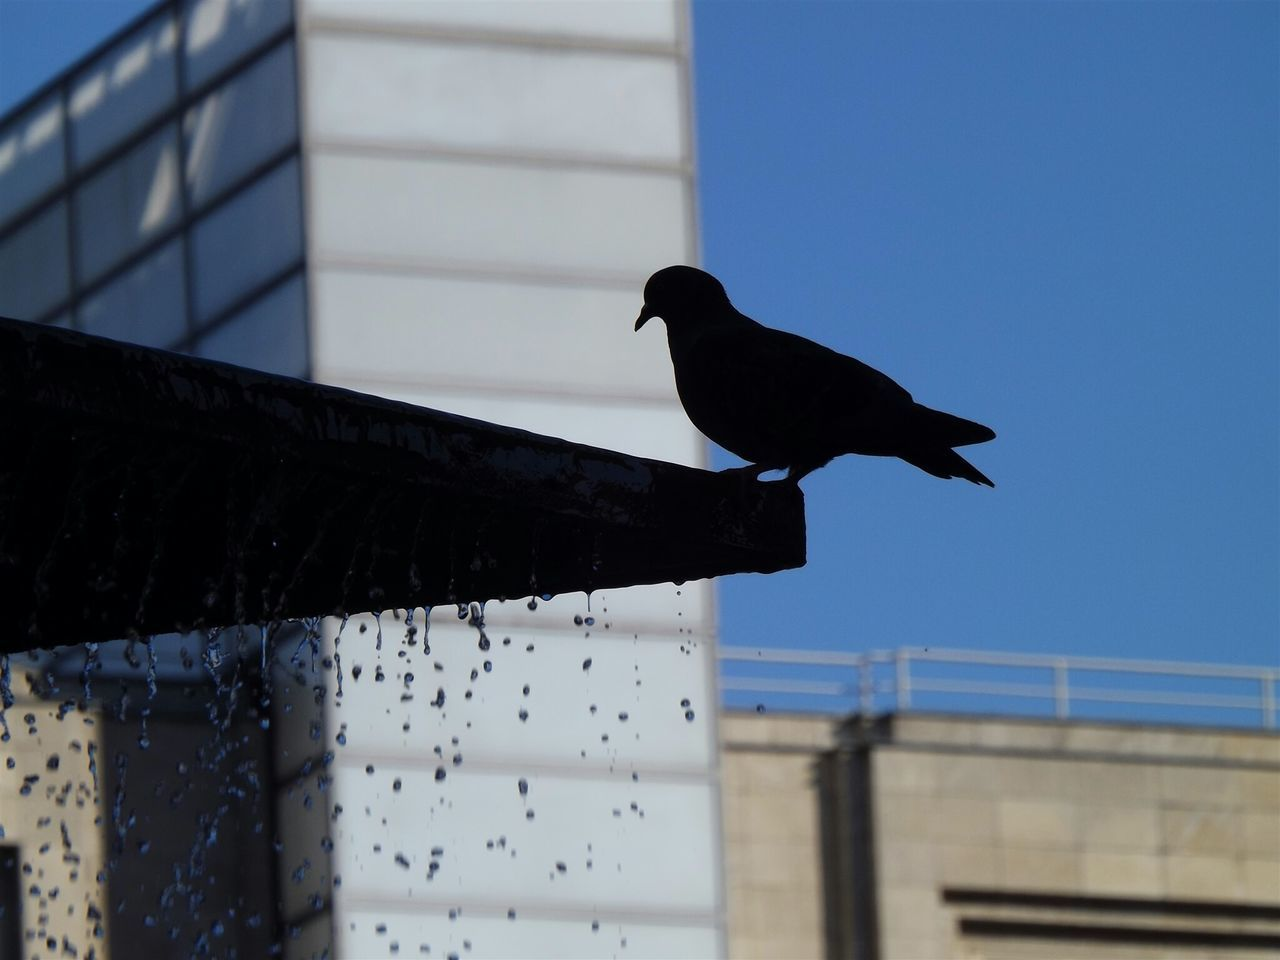 Silhouette Pigeon Perching On Fountain By Building